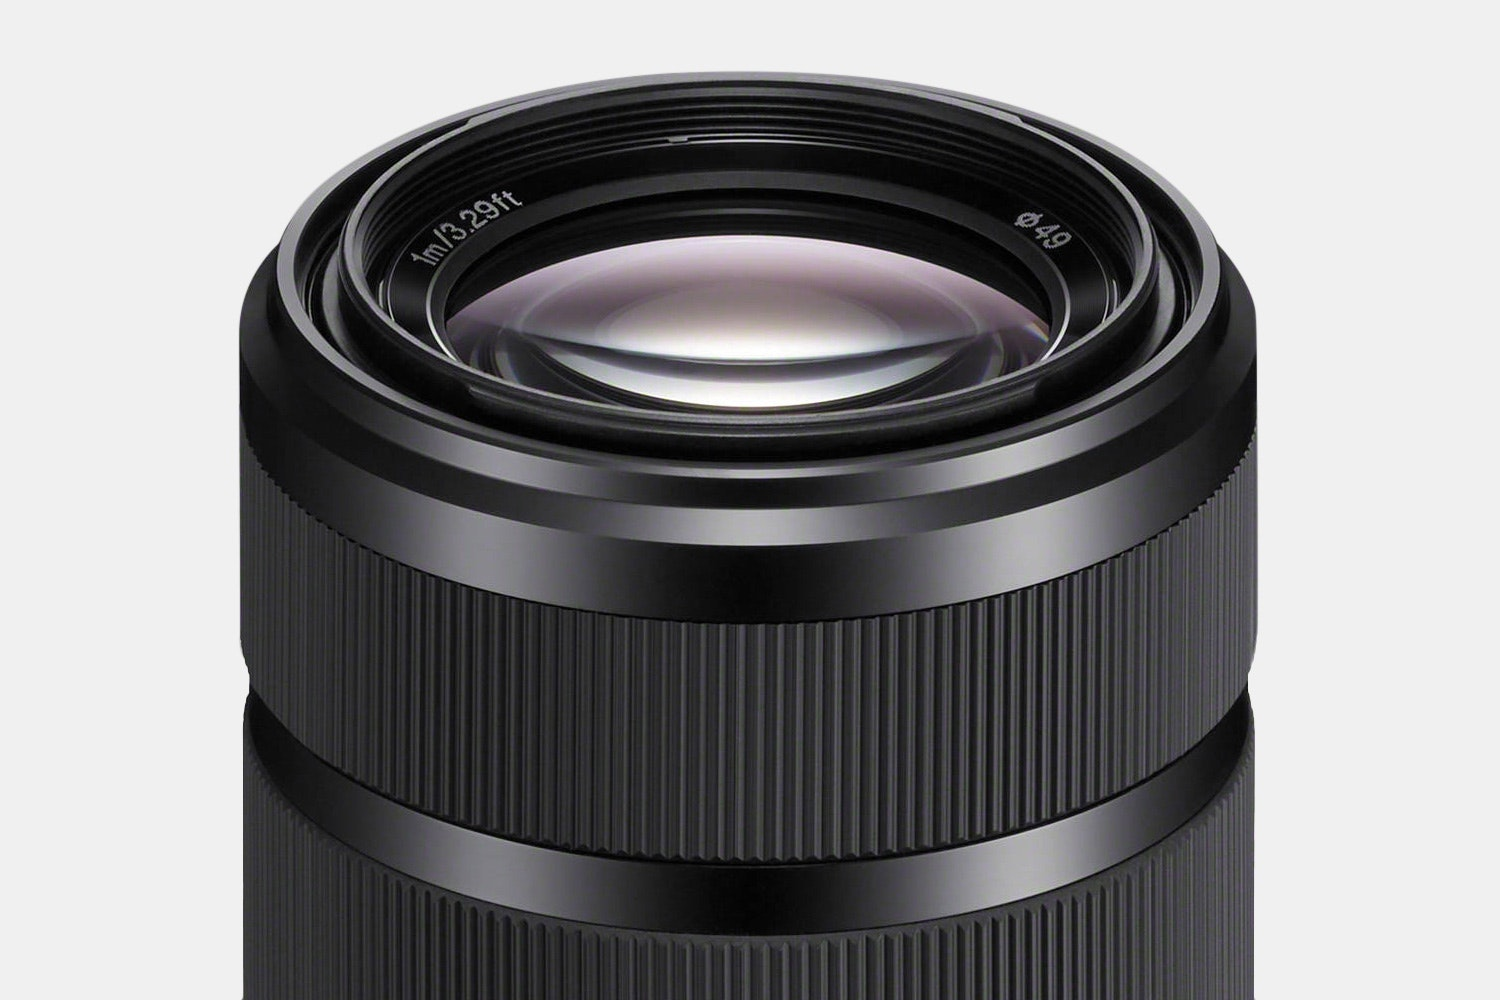 Sony 55–210mm F/4.5–6.3 OSS E-mount